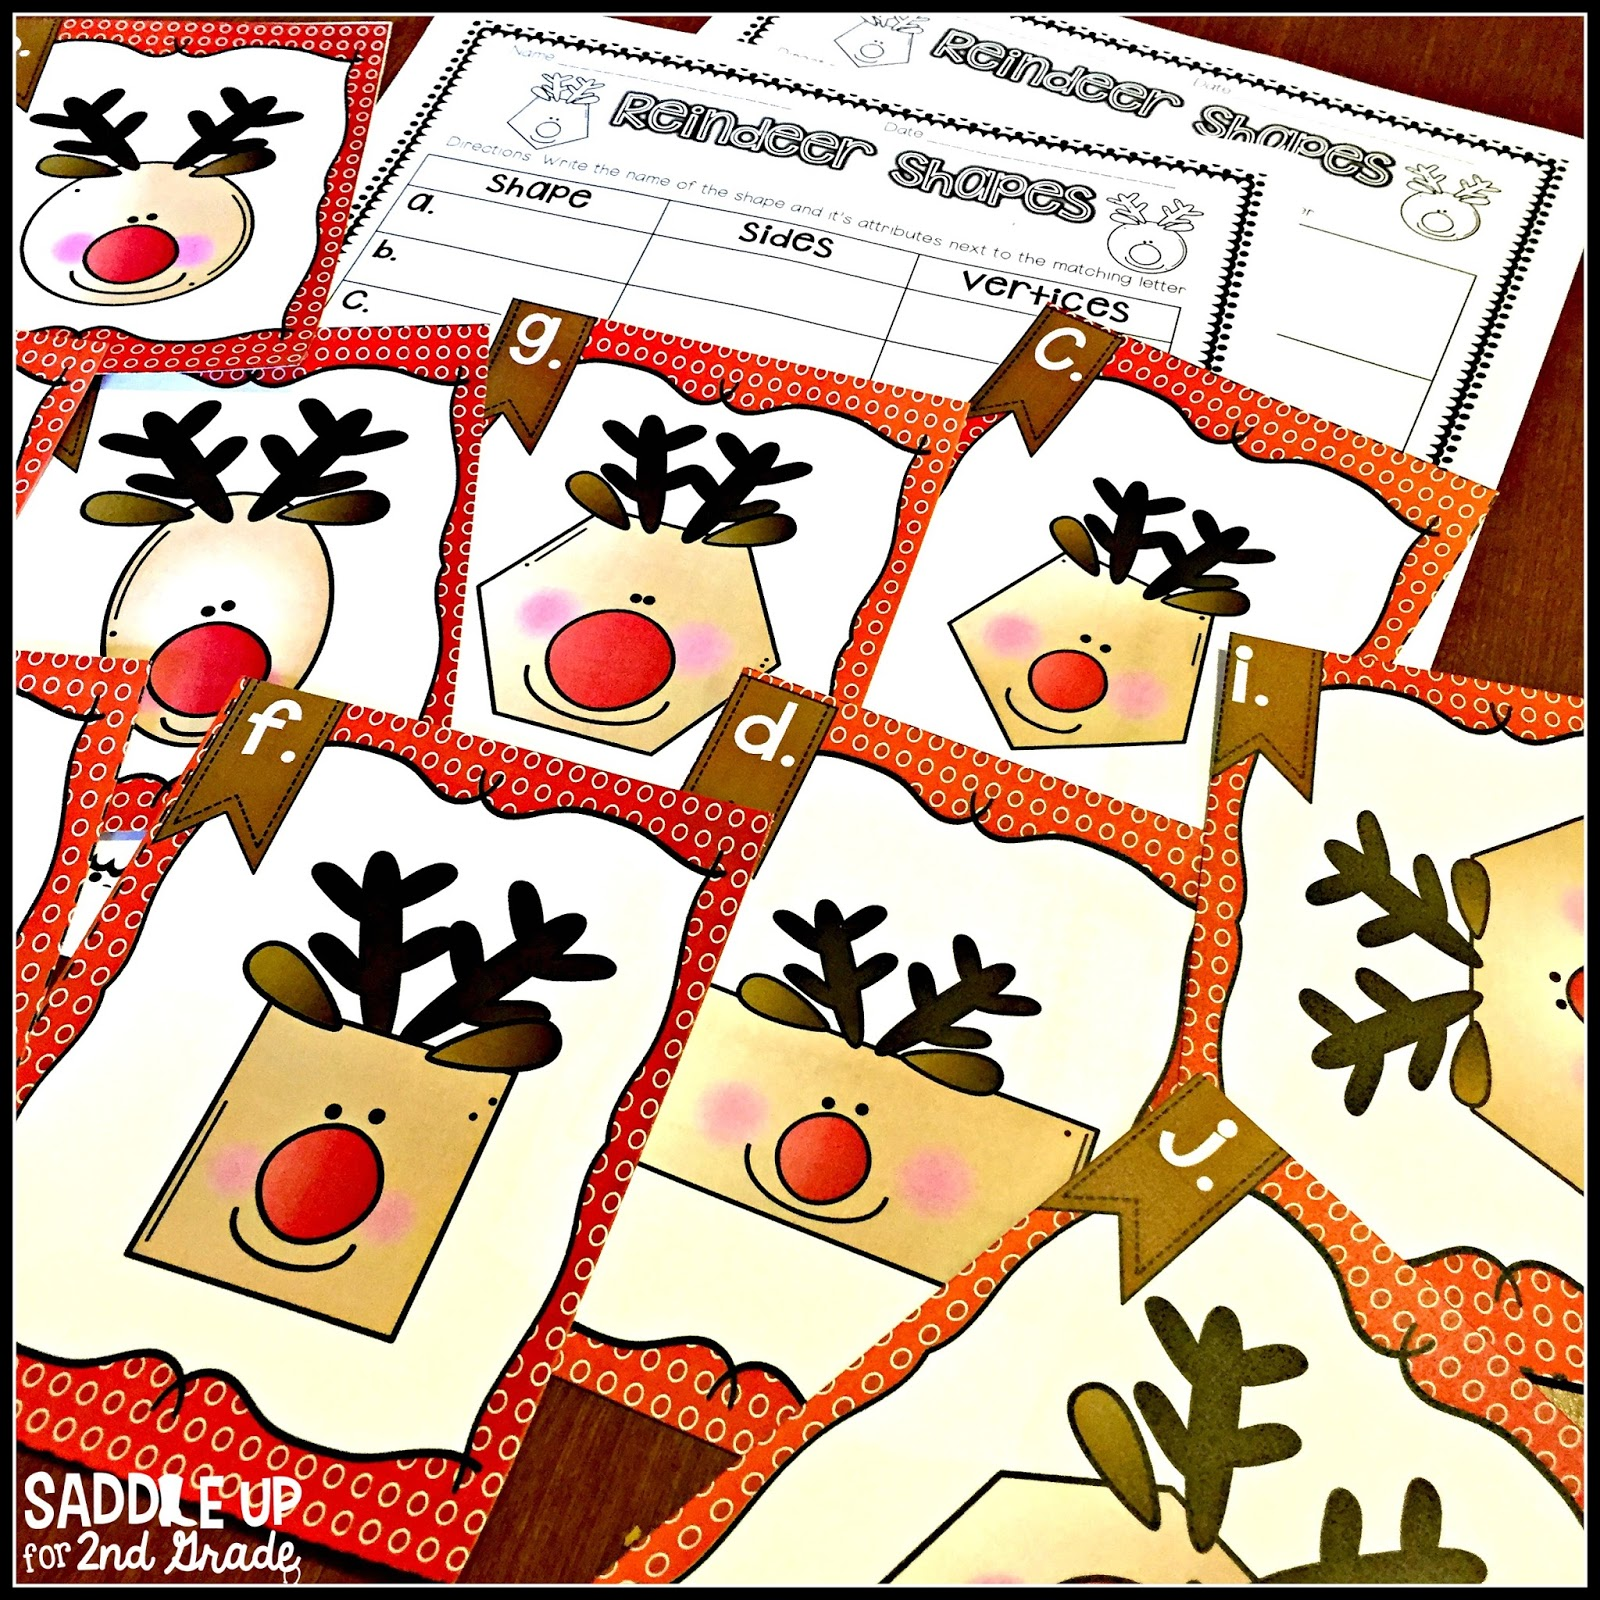 2D Reindeer Shape FREEBIE by Saddle Up For 2nd Grad